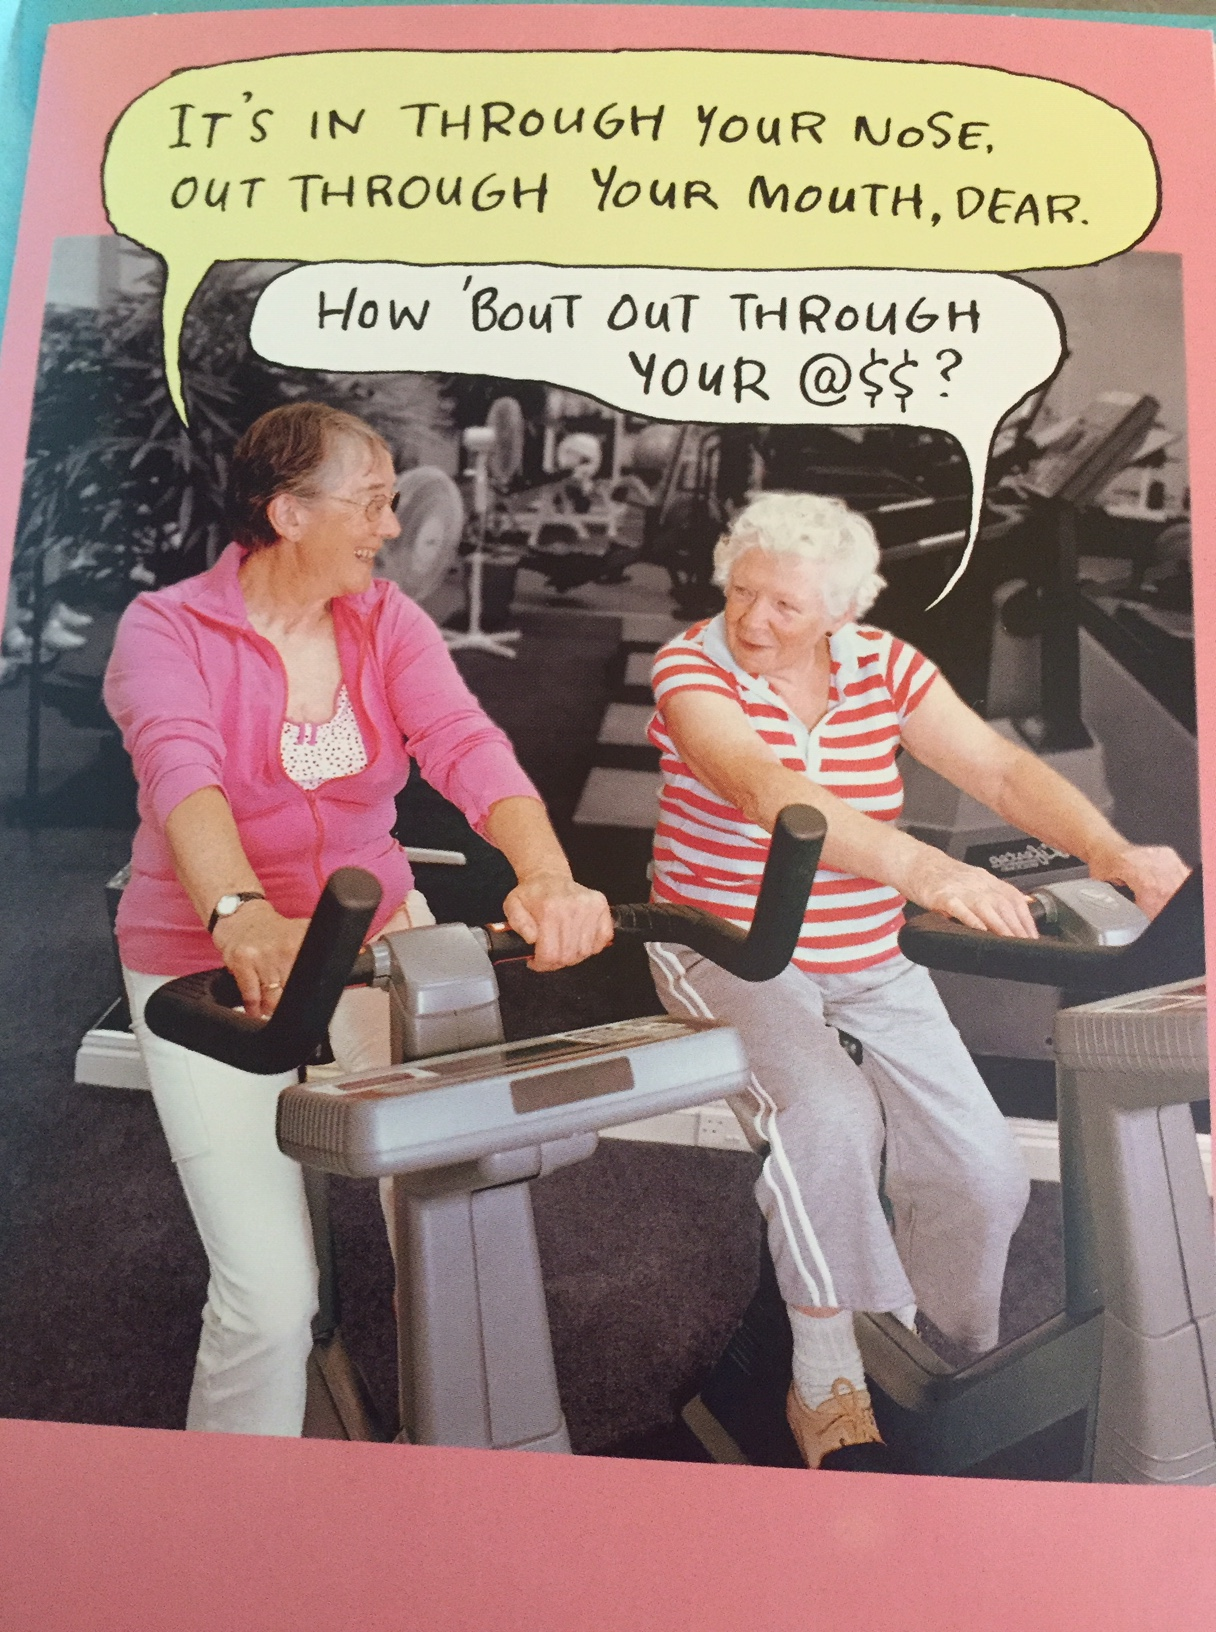 Funny Image about Aging Disgracefully